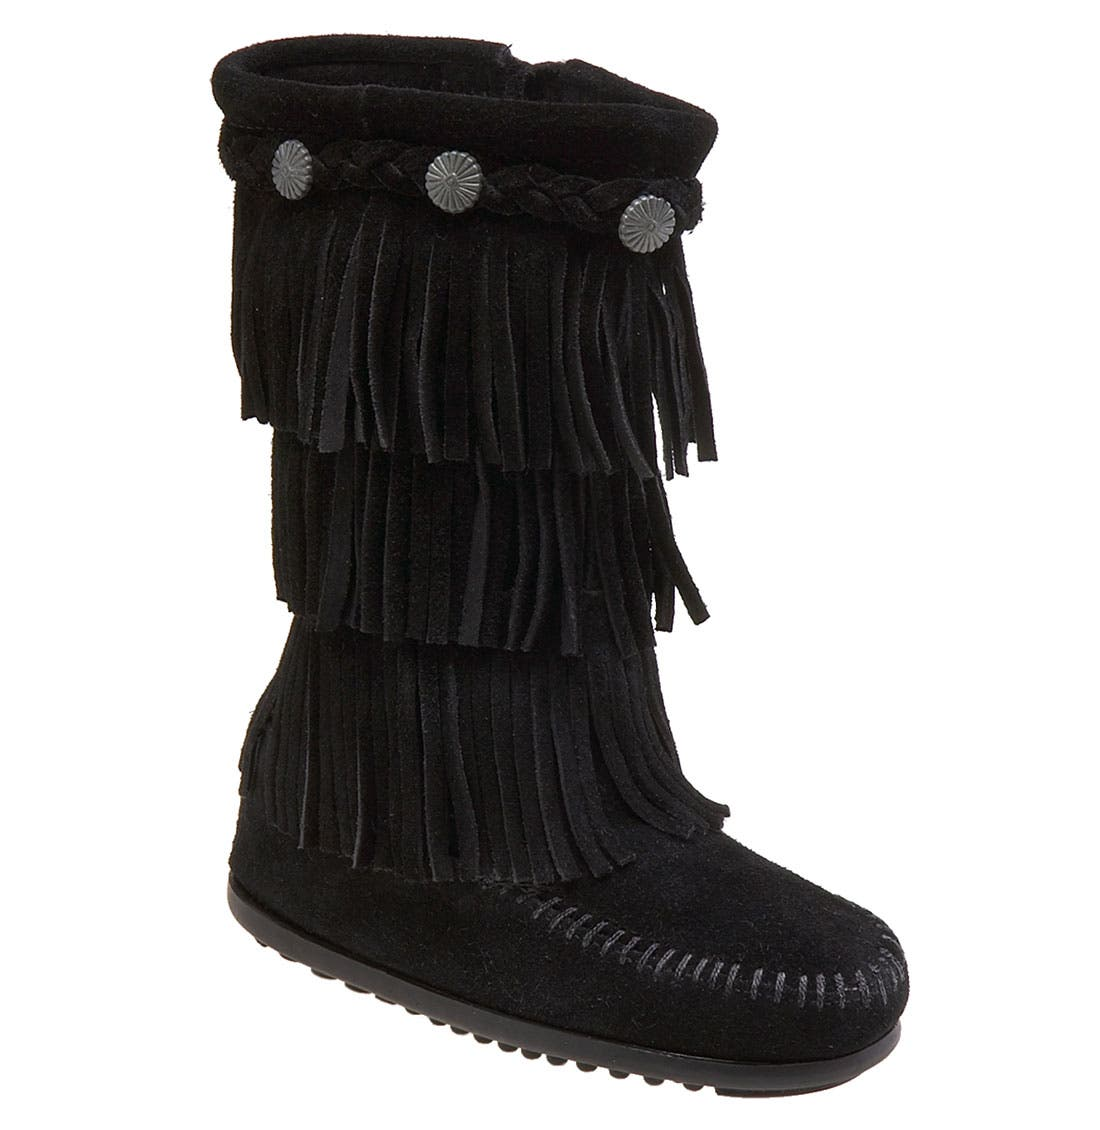 Minnetonka Three-Layer Fringe Boot (Walker, Toddler, Little Kid & Big Kid)